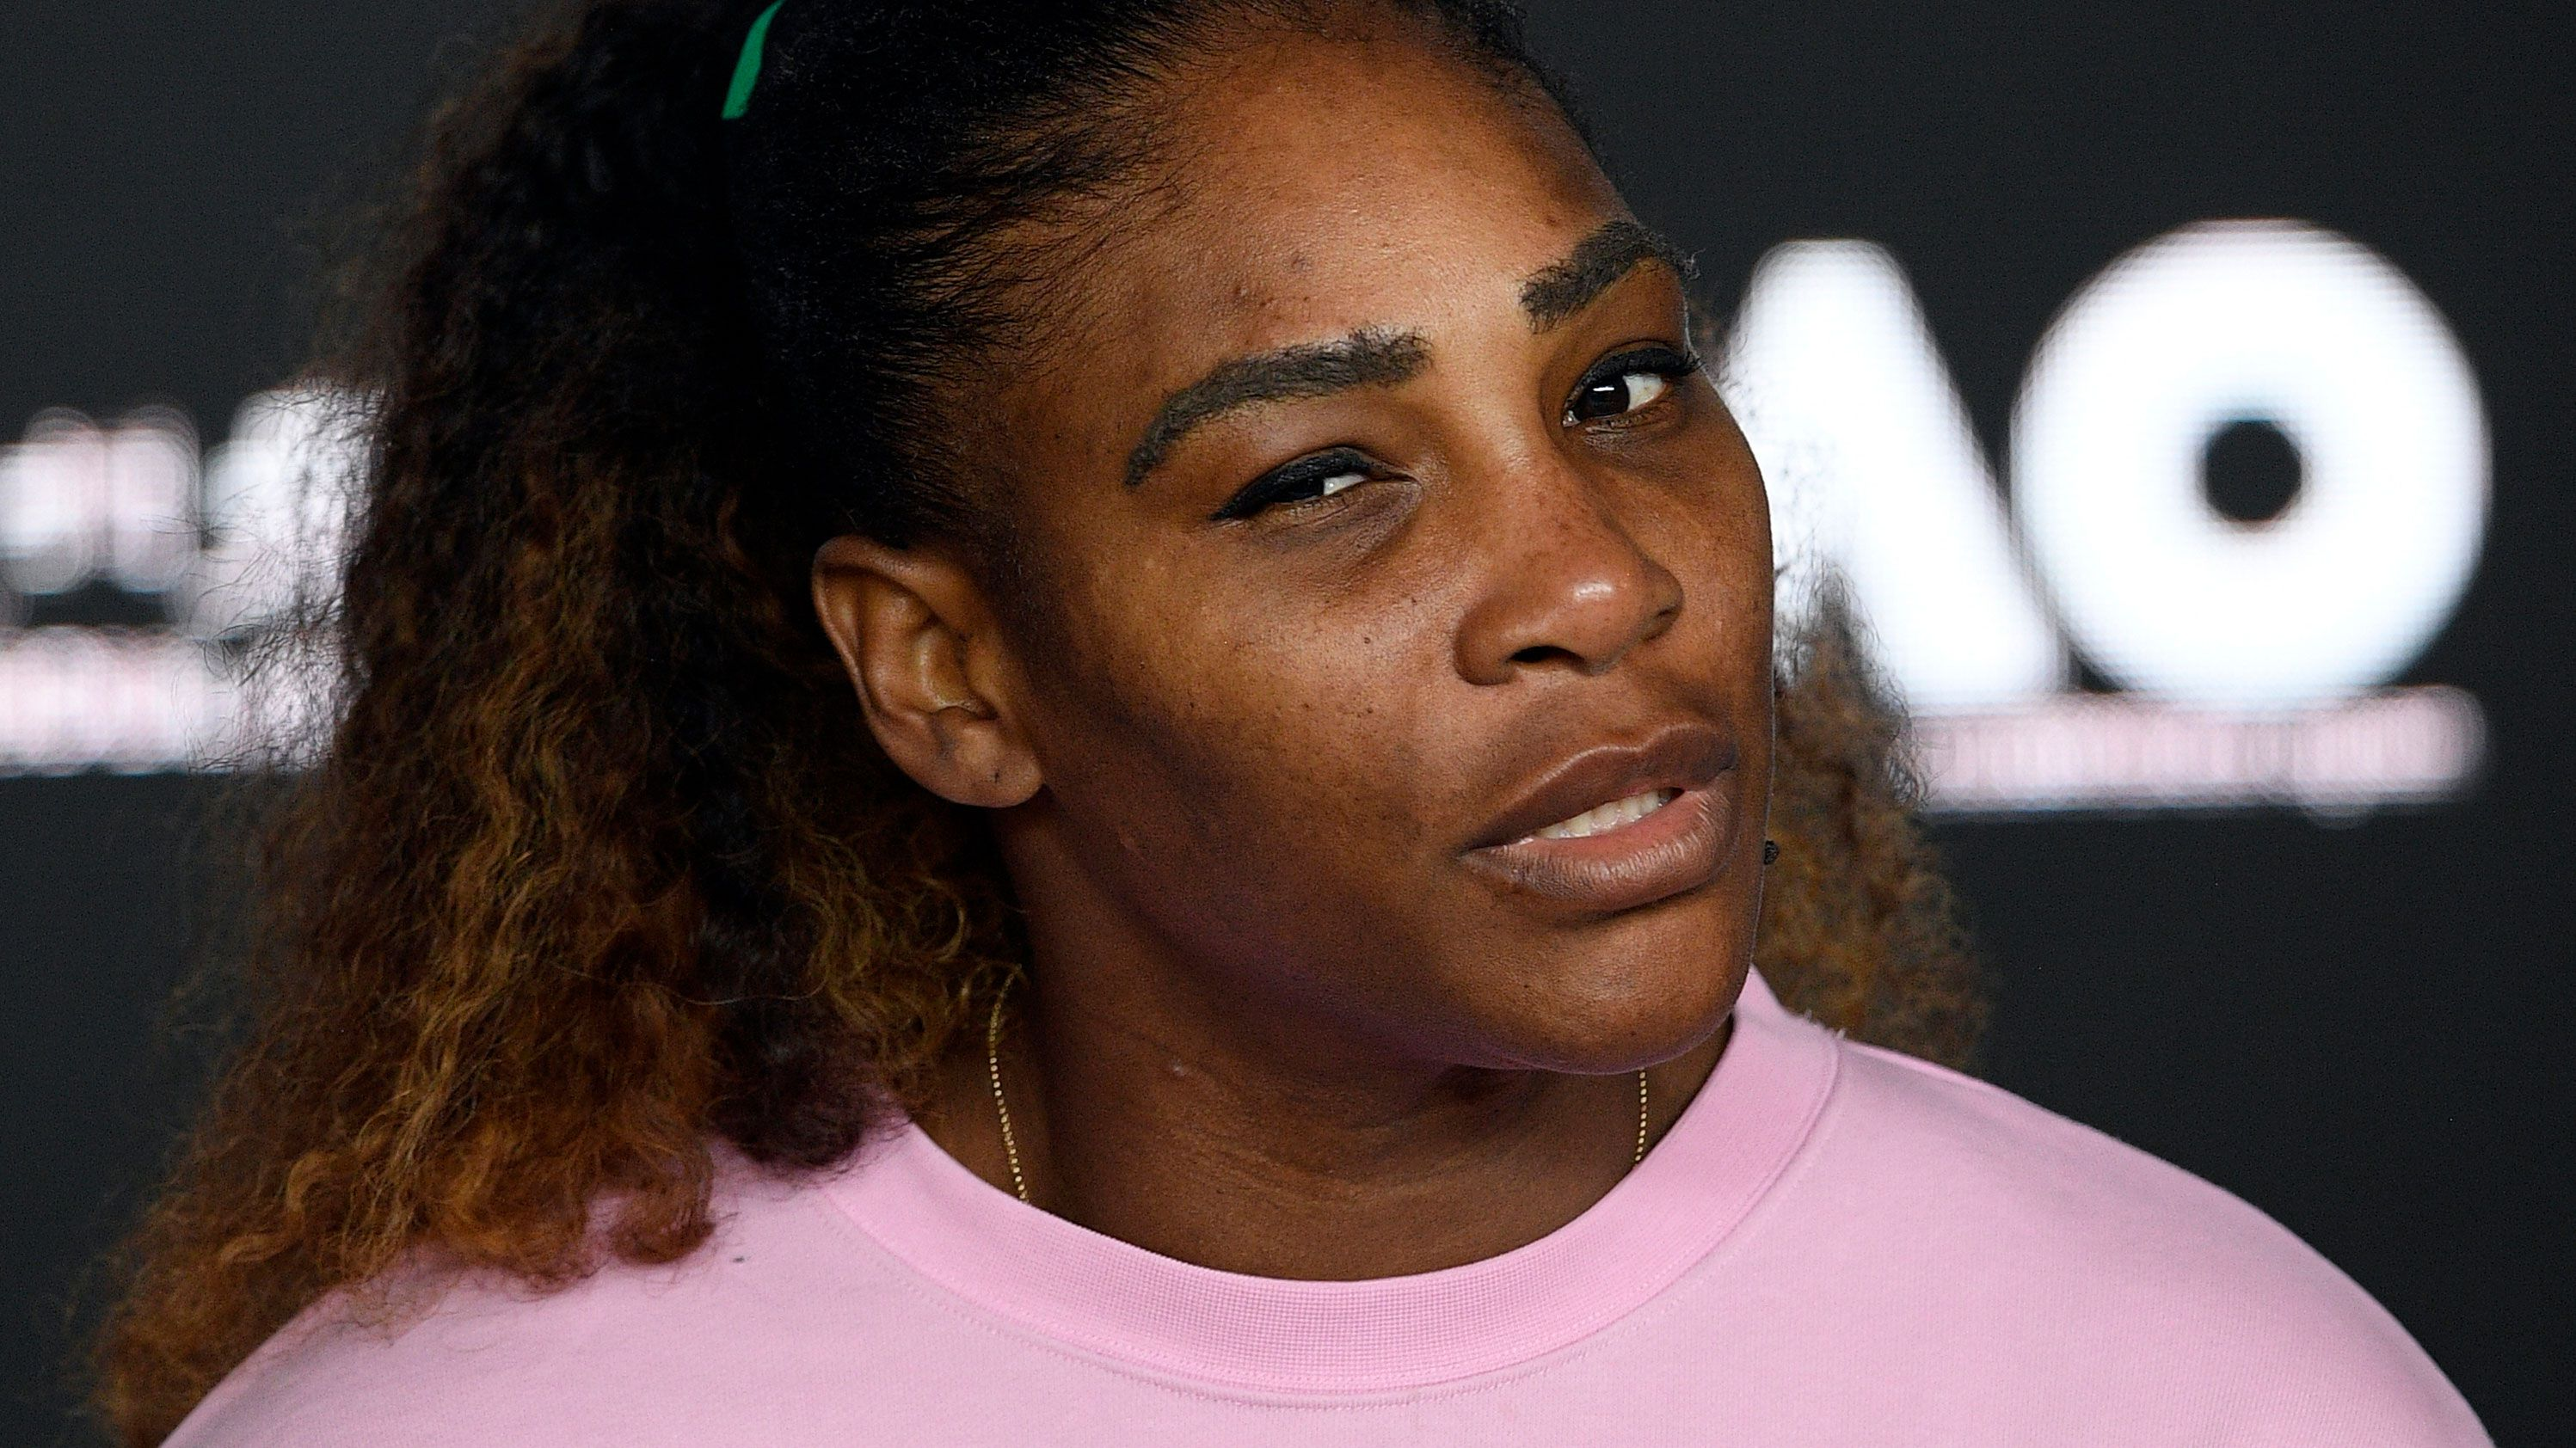 Serena Williams reacts to shock Australian Open loss in press conference